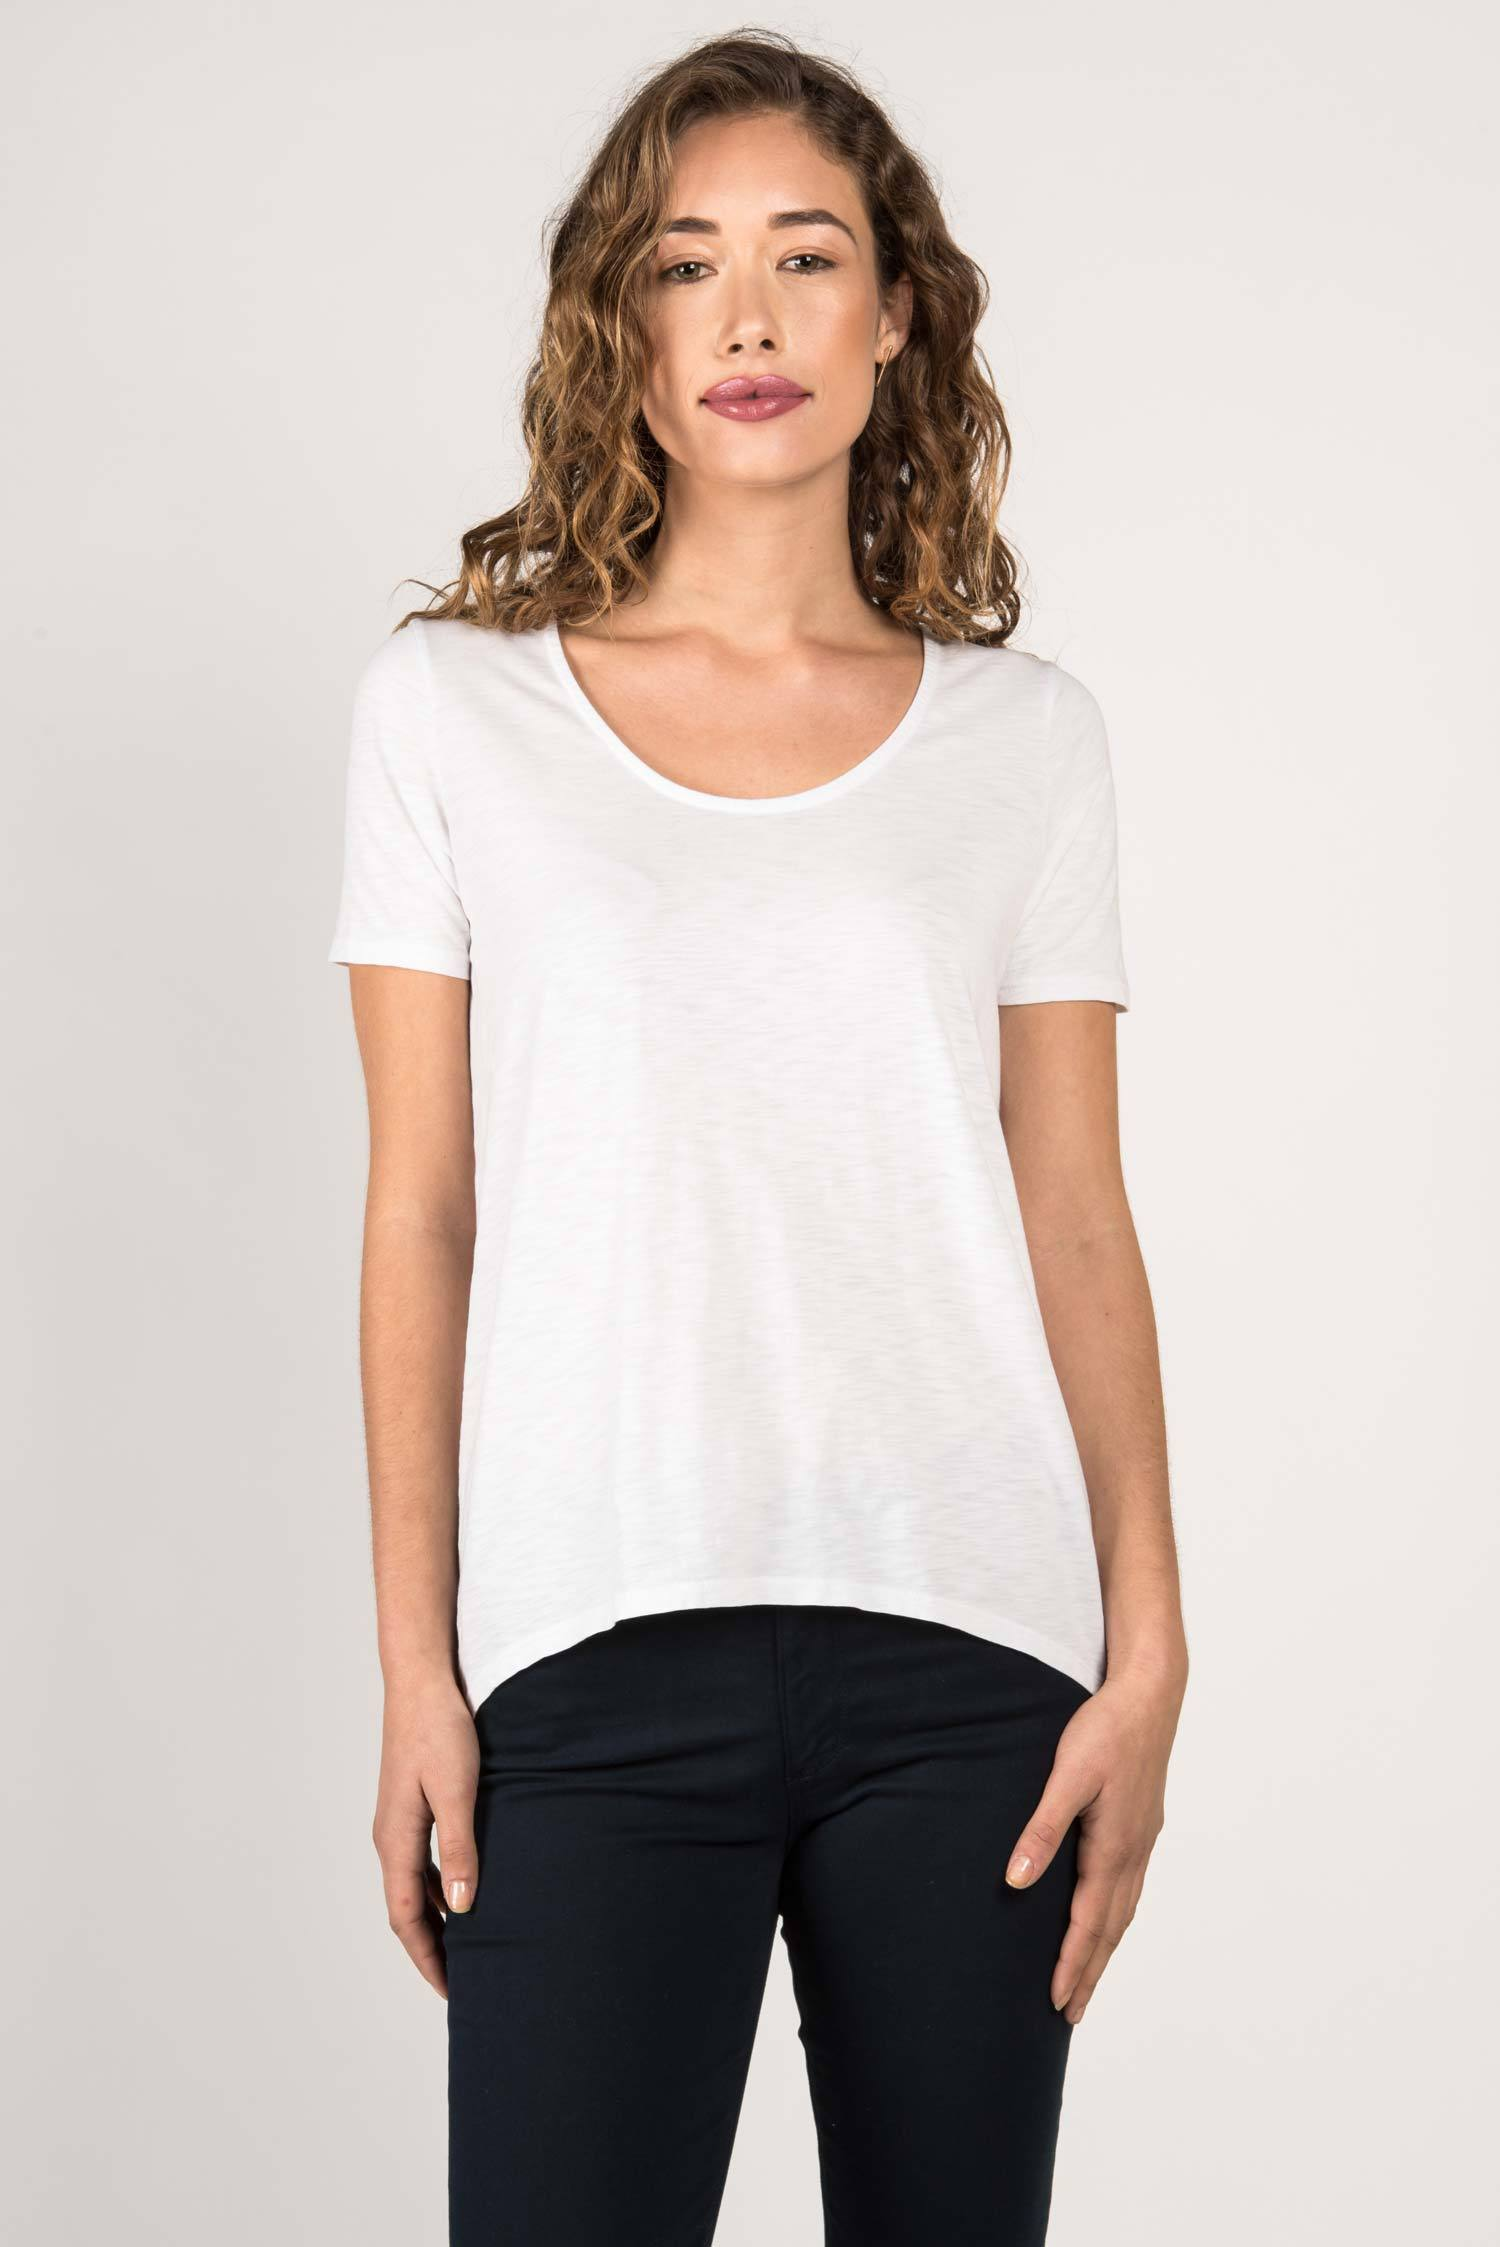 Womens Organic Cotton Tee Shirt | Essential Slub U Neck Top | White